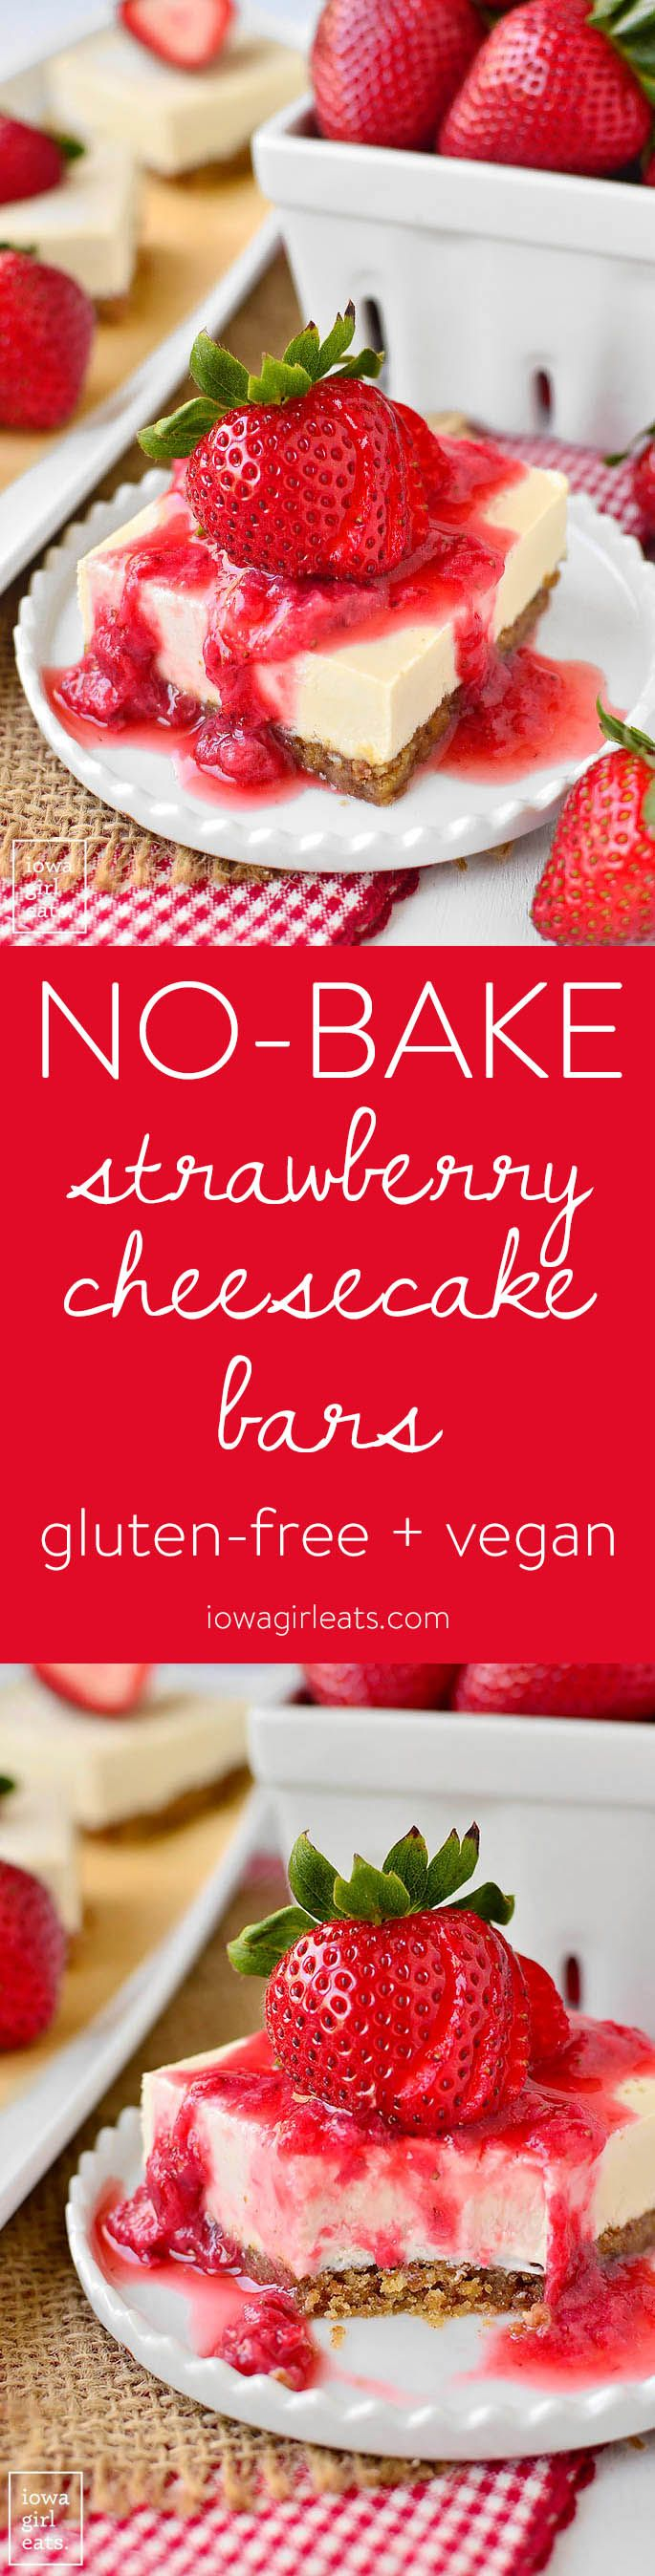 No-Bake Strawberry Cheesecake Bars are incredibly decadent and perfect for a less-guilt sweet treat. Gluten-free and vegan, too!   iowagirleats.com